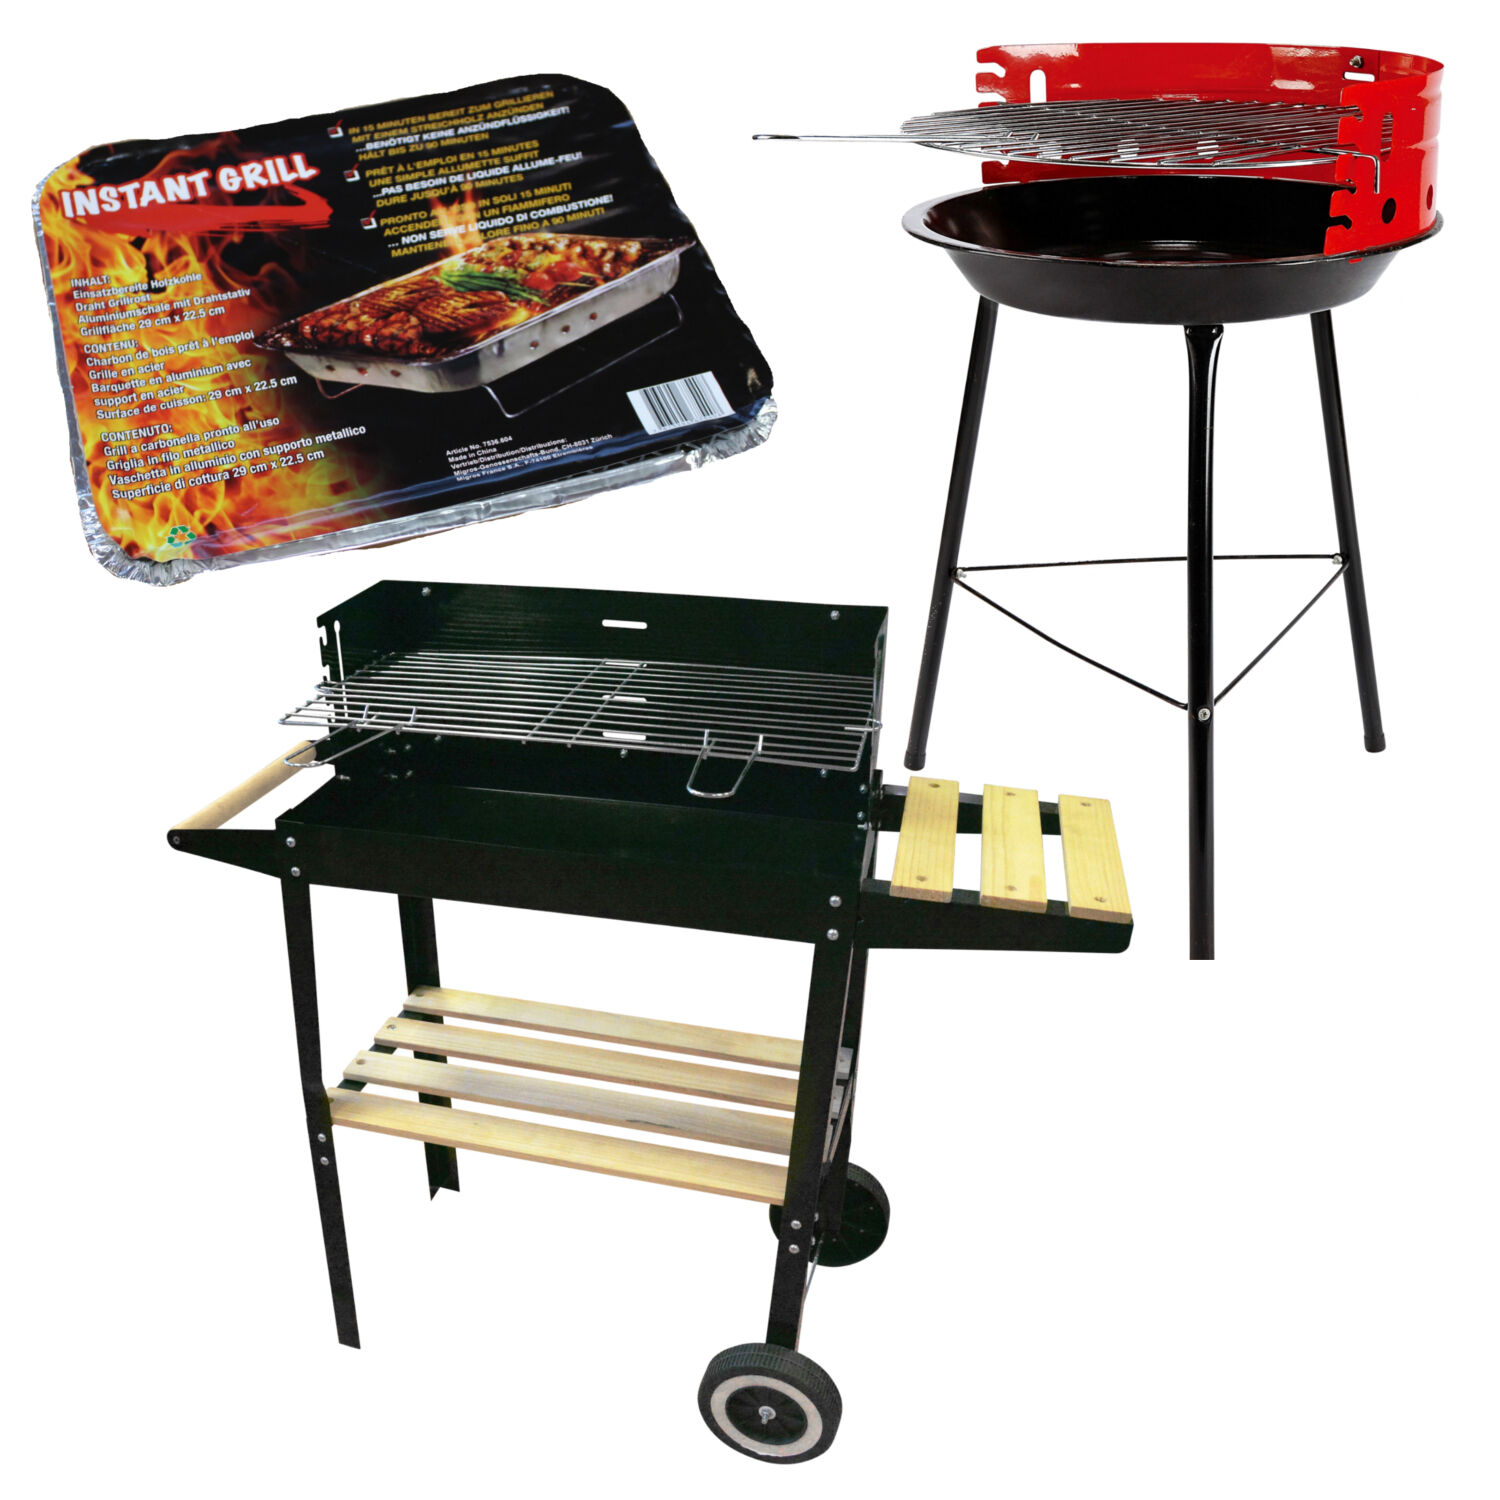 Günstiger Grill Disposable Barbecue Grill Kynast Round Festivalgrill Festival Cart Garden House